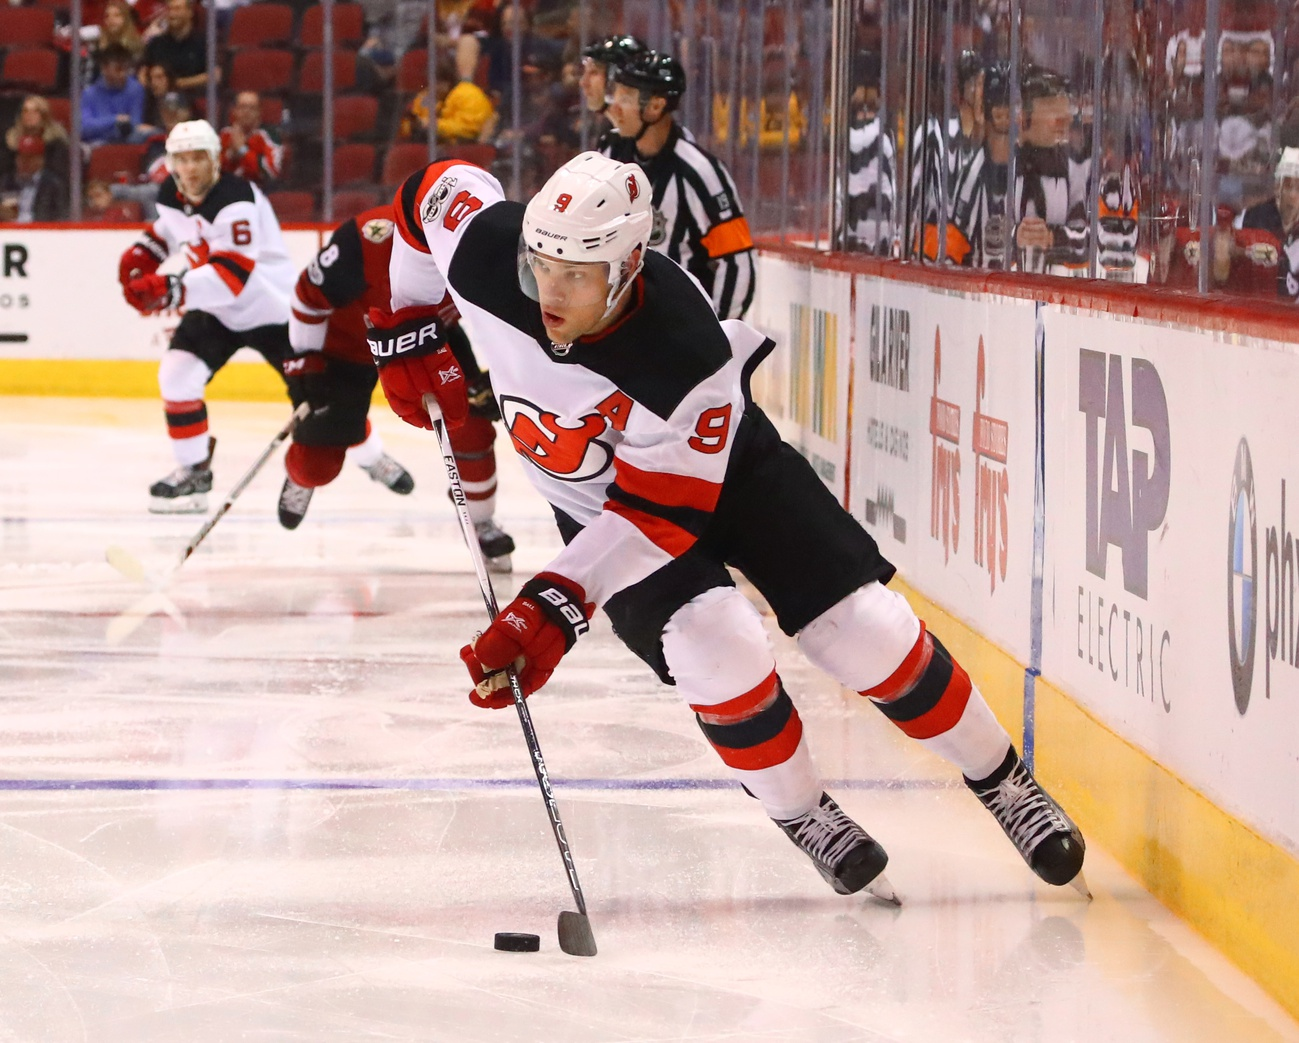 Nhl Trade The New Jersey Devils Trade Taylor Hall To The Arizona Coyotes Nhl Rumors